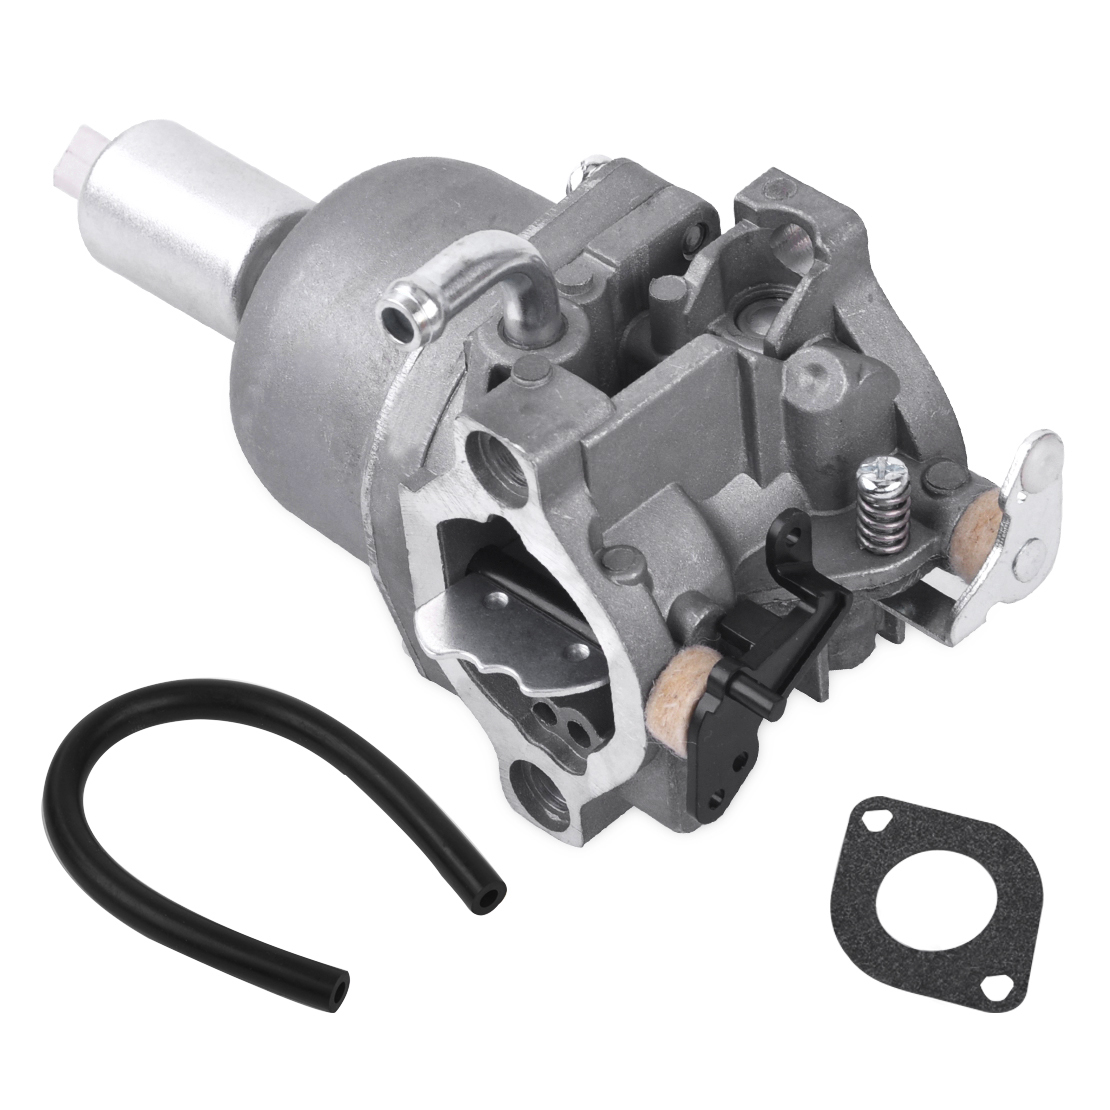 все цены на LETAOSK New 2 pin Carburetor Carb fit for Briggs & Stratton 591731 594593 Nikki 699915 697122 Motor Replacement Accessories